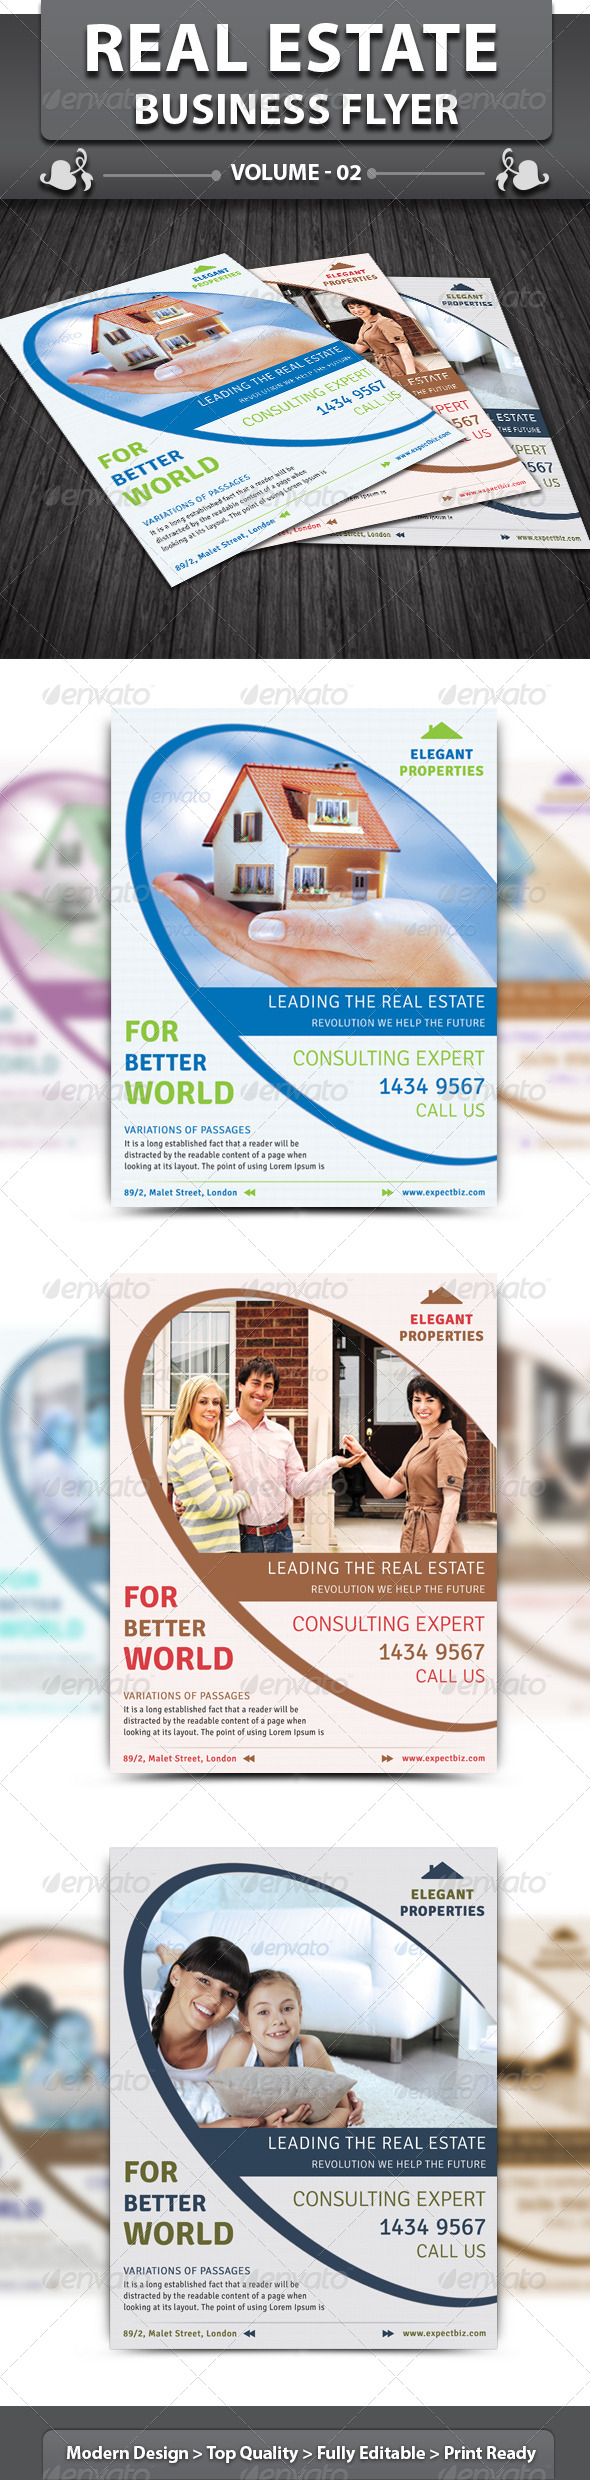 Real Estate Business Flyer | Volume 2